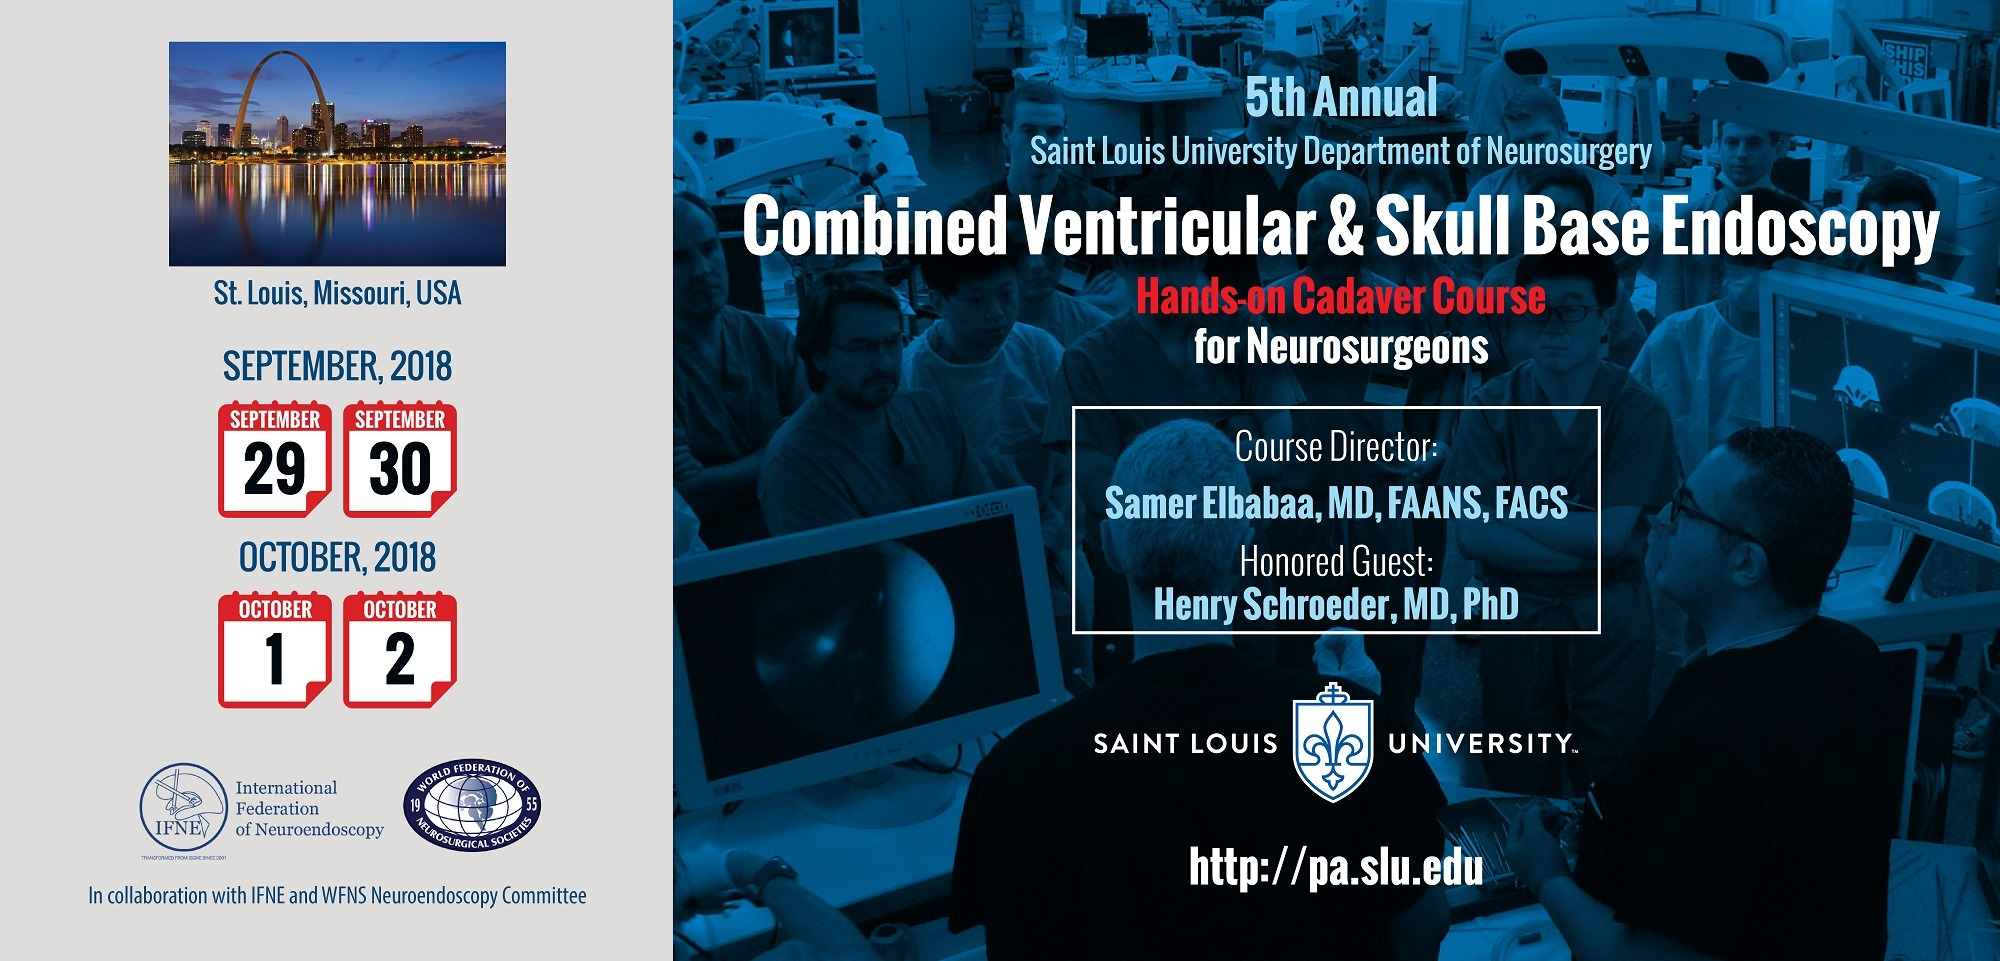 5th Annual SLU Department of Neurosurgery Combined Ventricular and Skull Base Endoscopy Course for Neurosurgeons